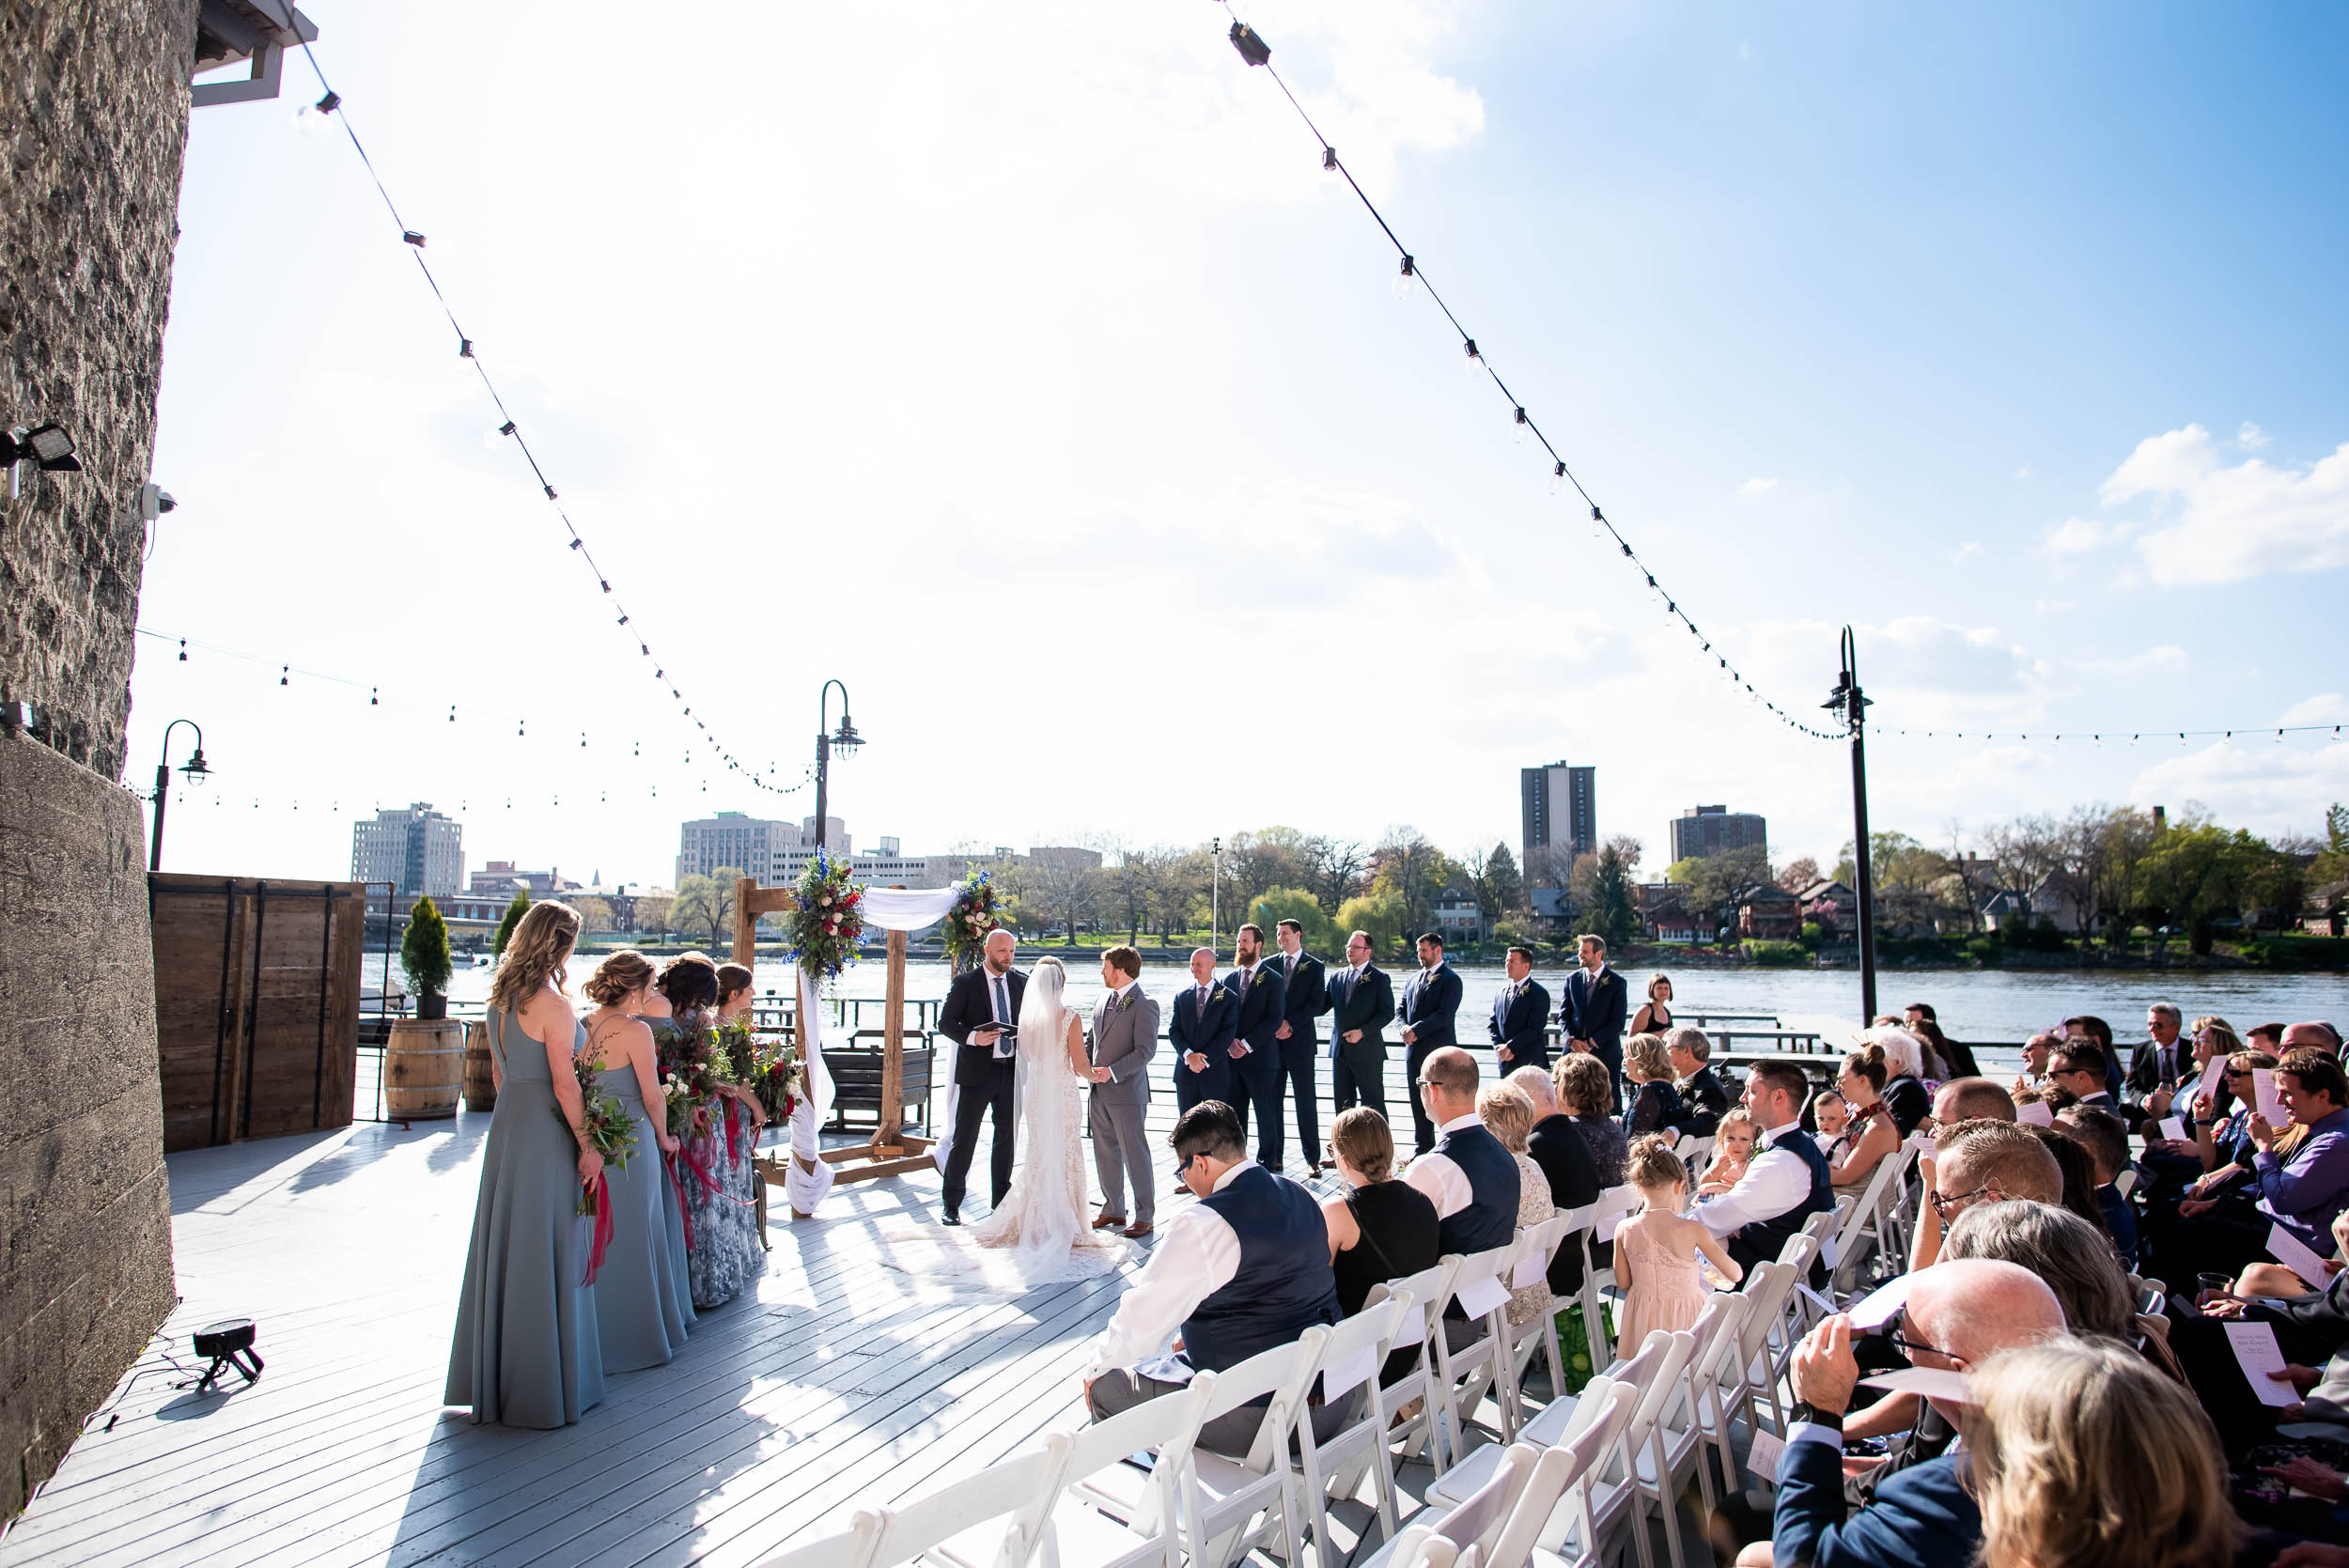 Outdoor wedding ceremony ideas: Modern industrial Chicago wedding inside Prairie Street Brewhouse captured by J. Brown Photography. Find more wedding ideas at jbrownphotography.com!